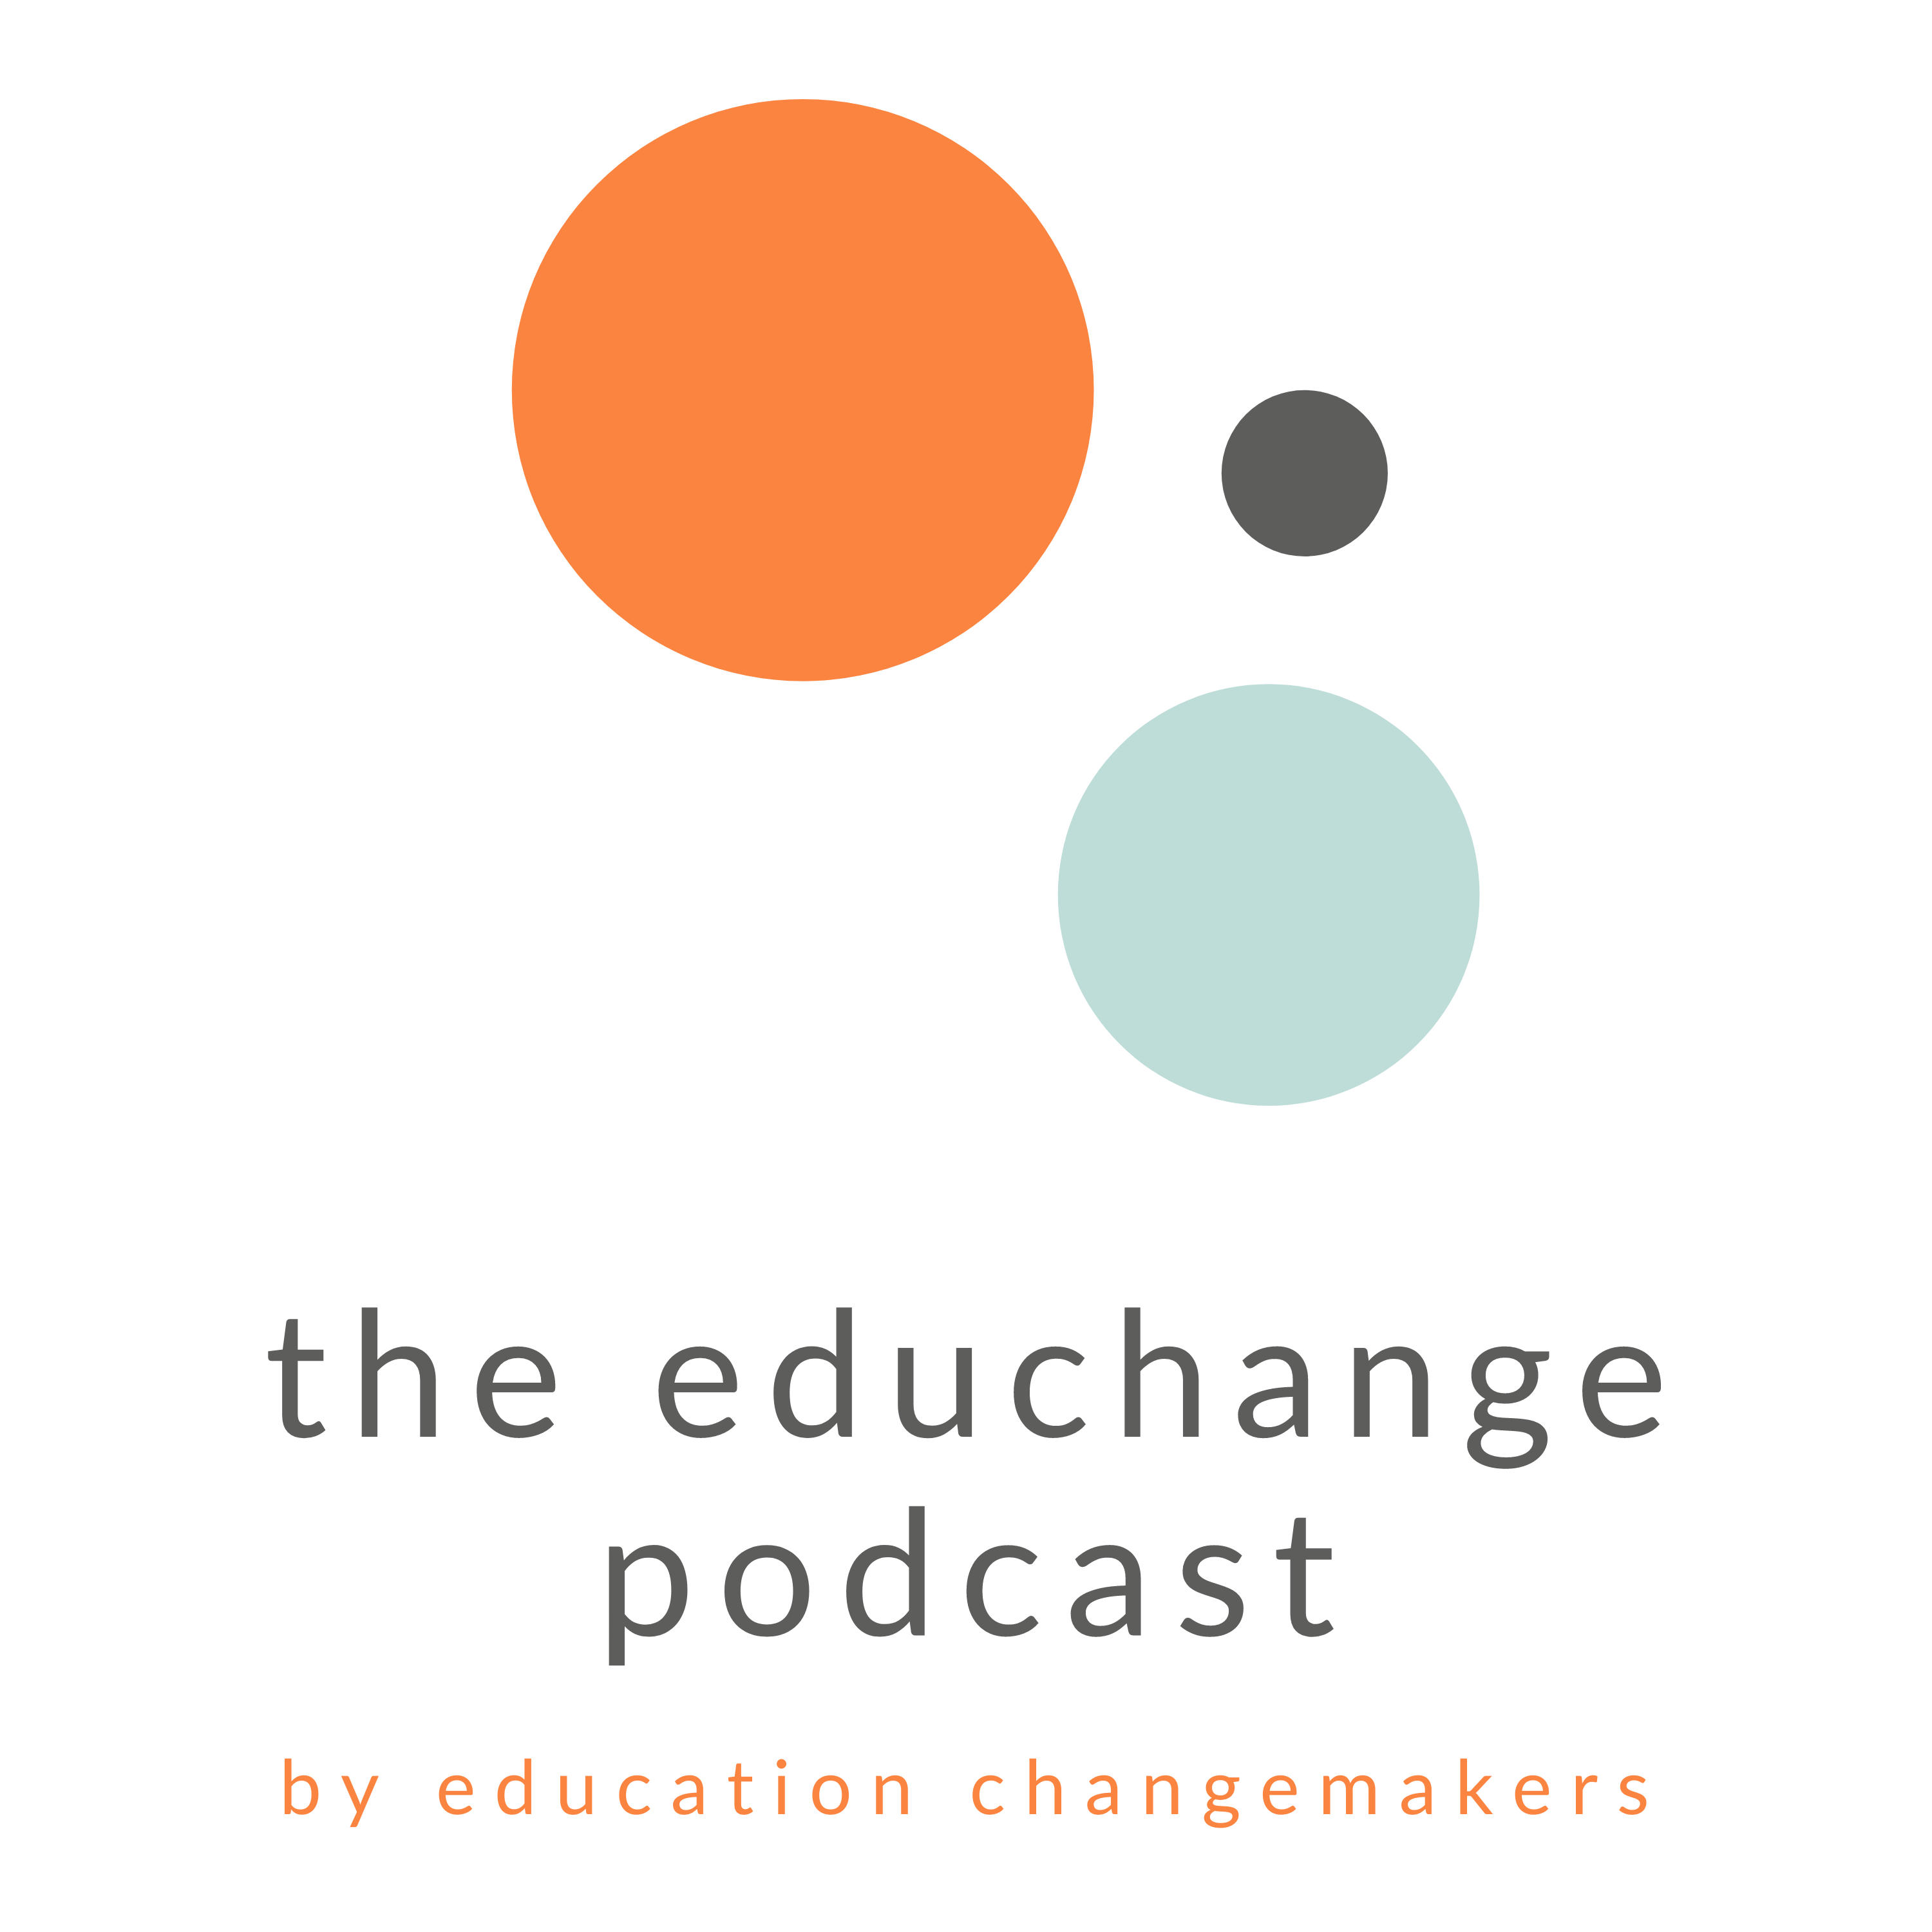 Intro: Welcome to The Educhange Podcast